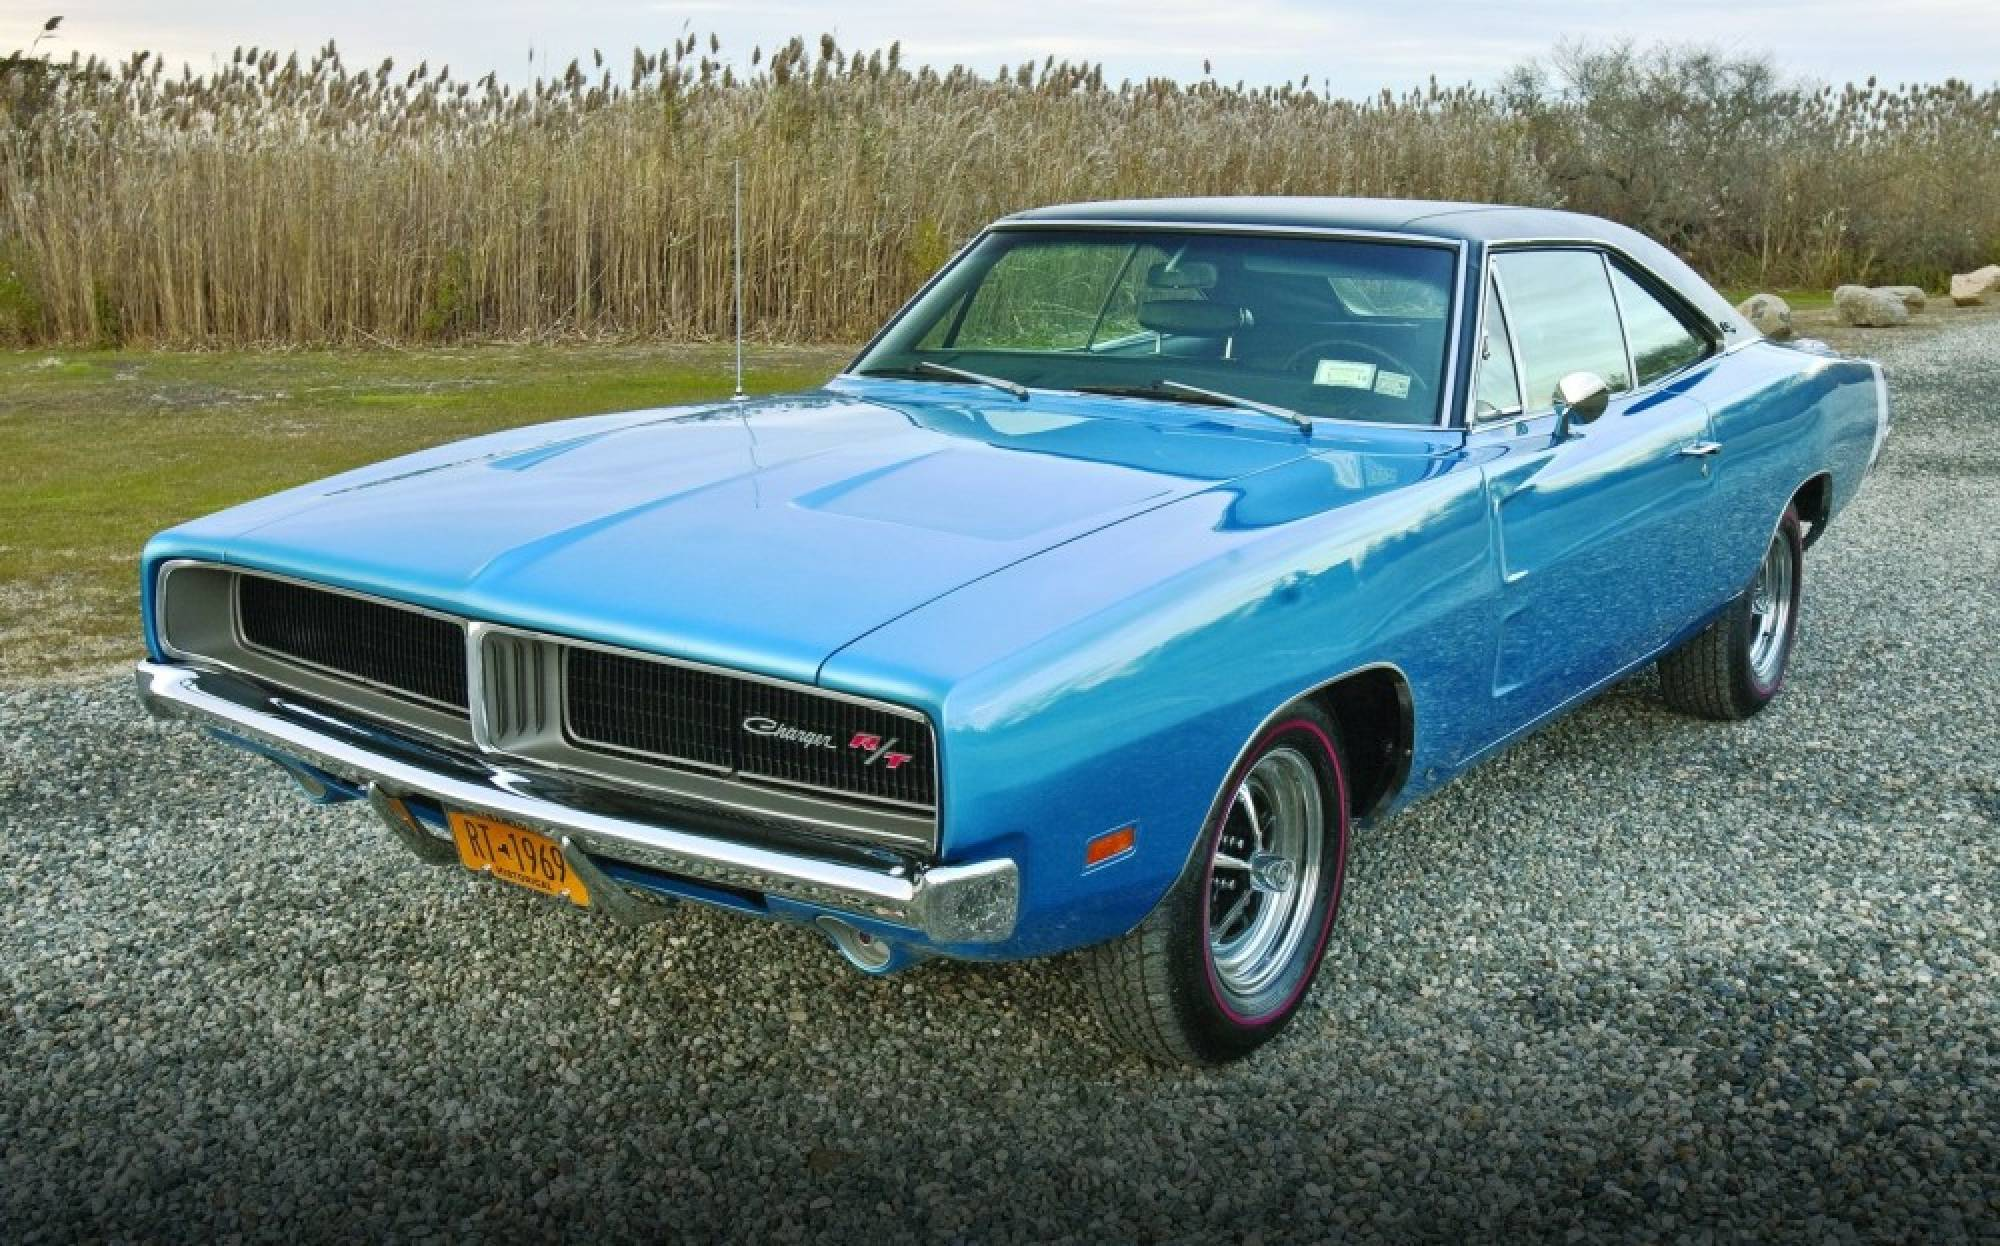 1969 Gto For Sale Best Car Models 2019 2020 Dodge Charger Color Chart Top Cars Of The 60s 2